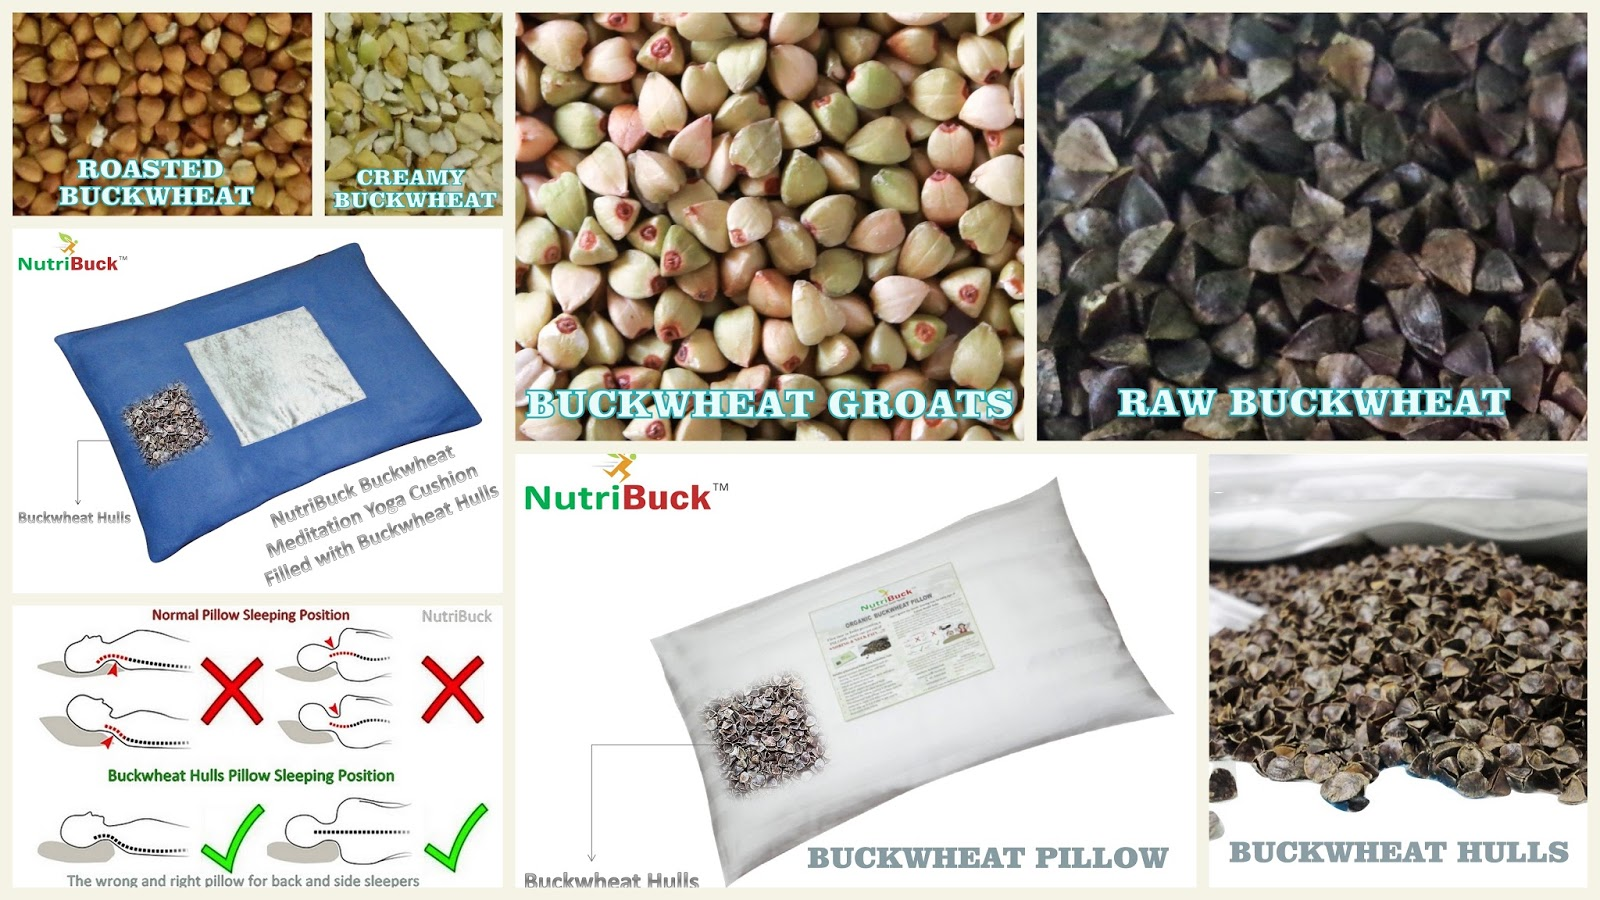 buckwheat pillow case buckwheat pillow benefits buckwheat pillow singapore